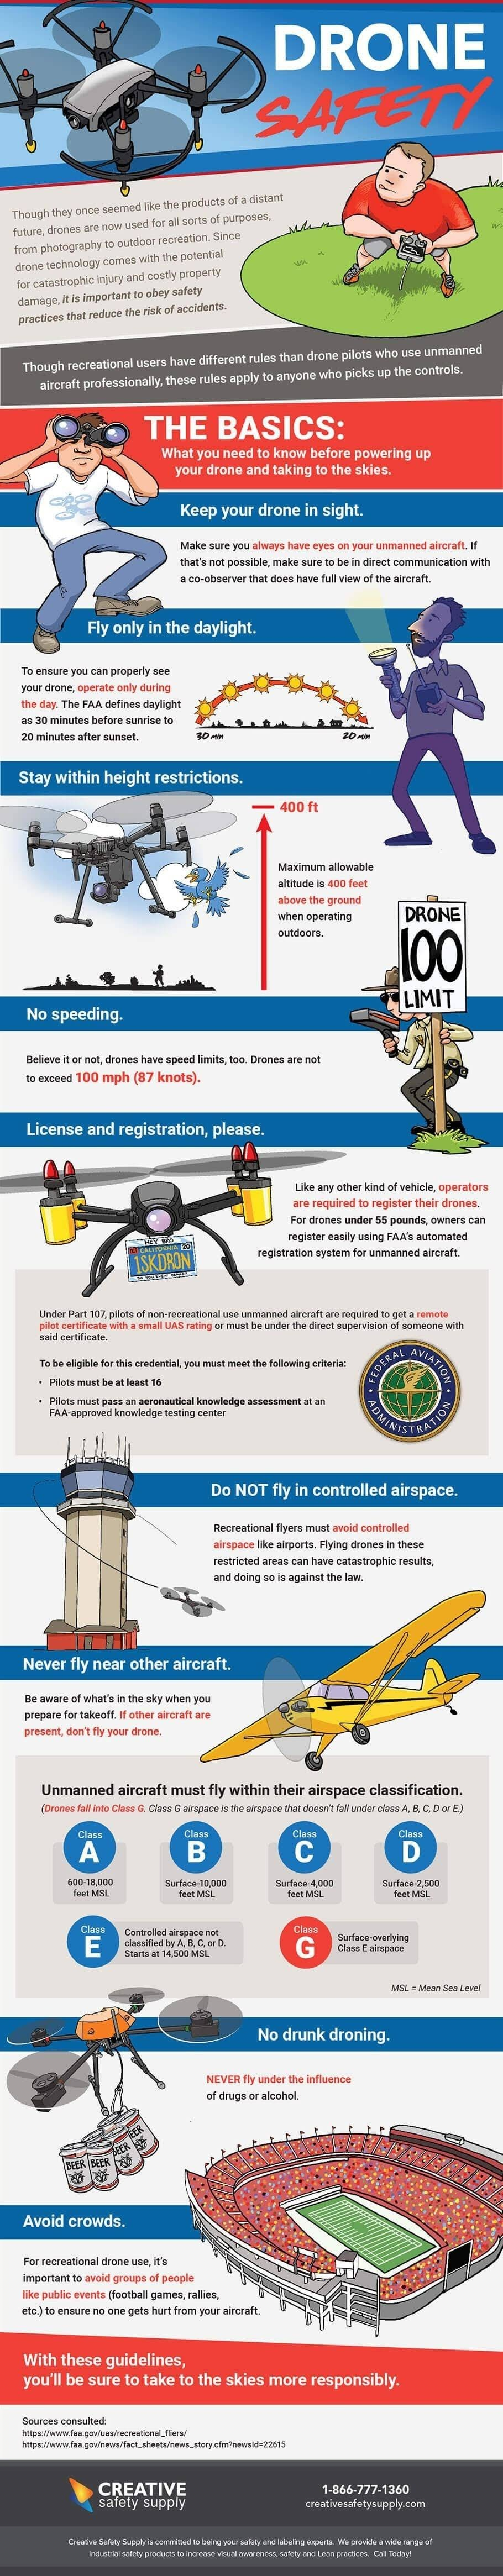 Drone Safety Advice #infographic